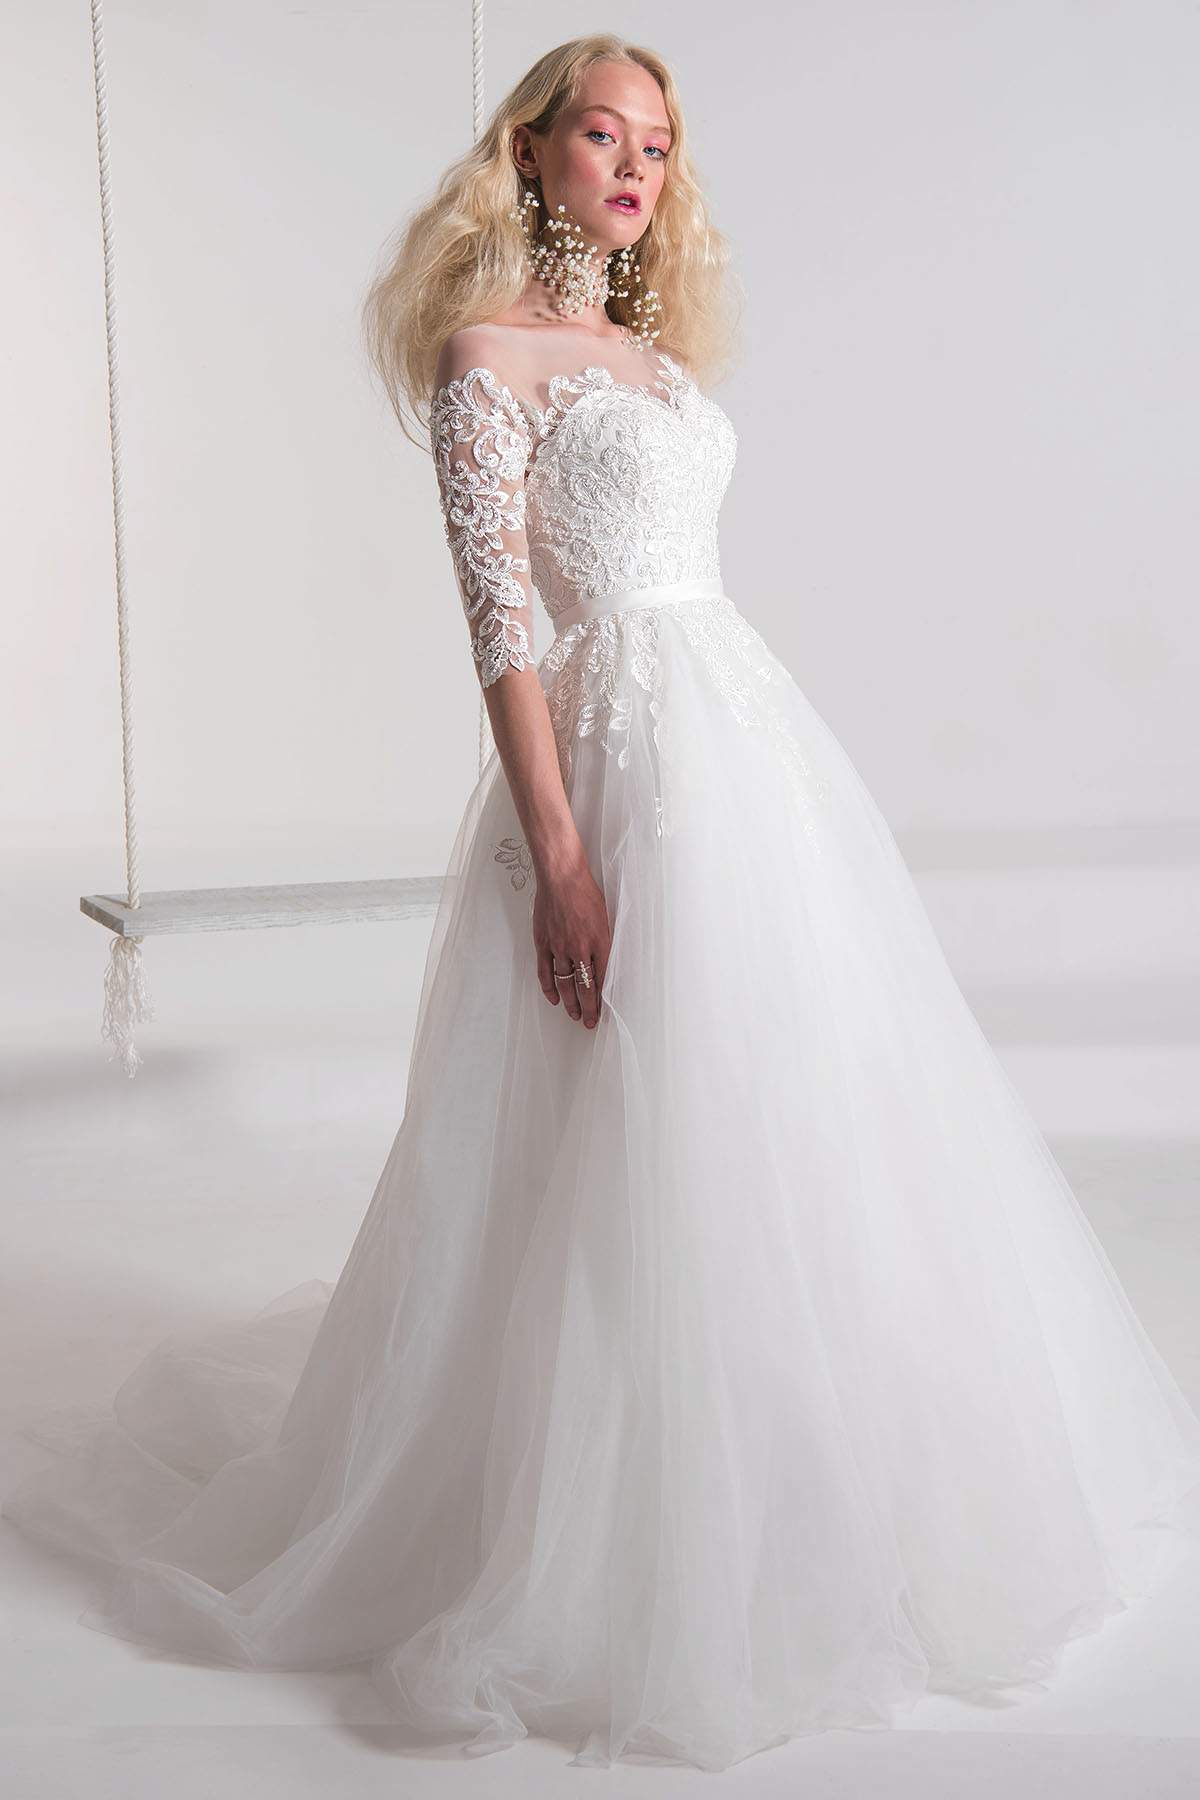 cornflower by chloe couture find your dream dress